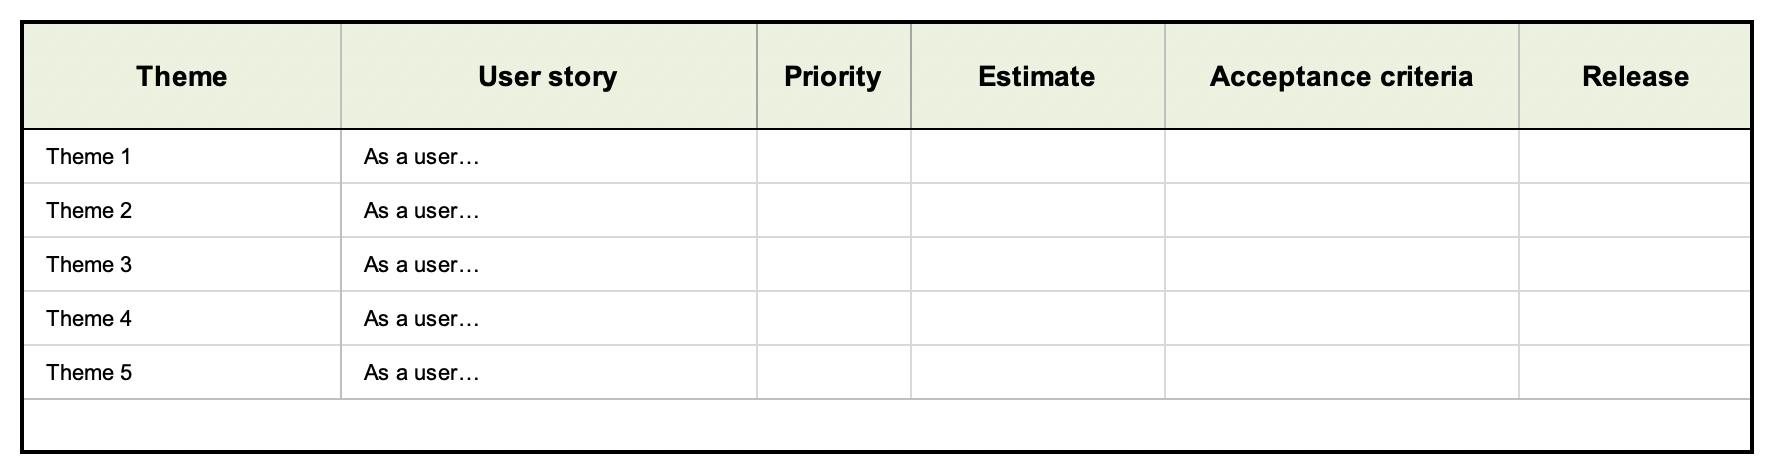 User Story Template Examples For Product Managers | Aha! For User Story Template Word